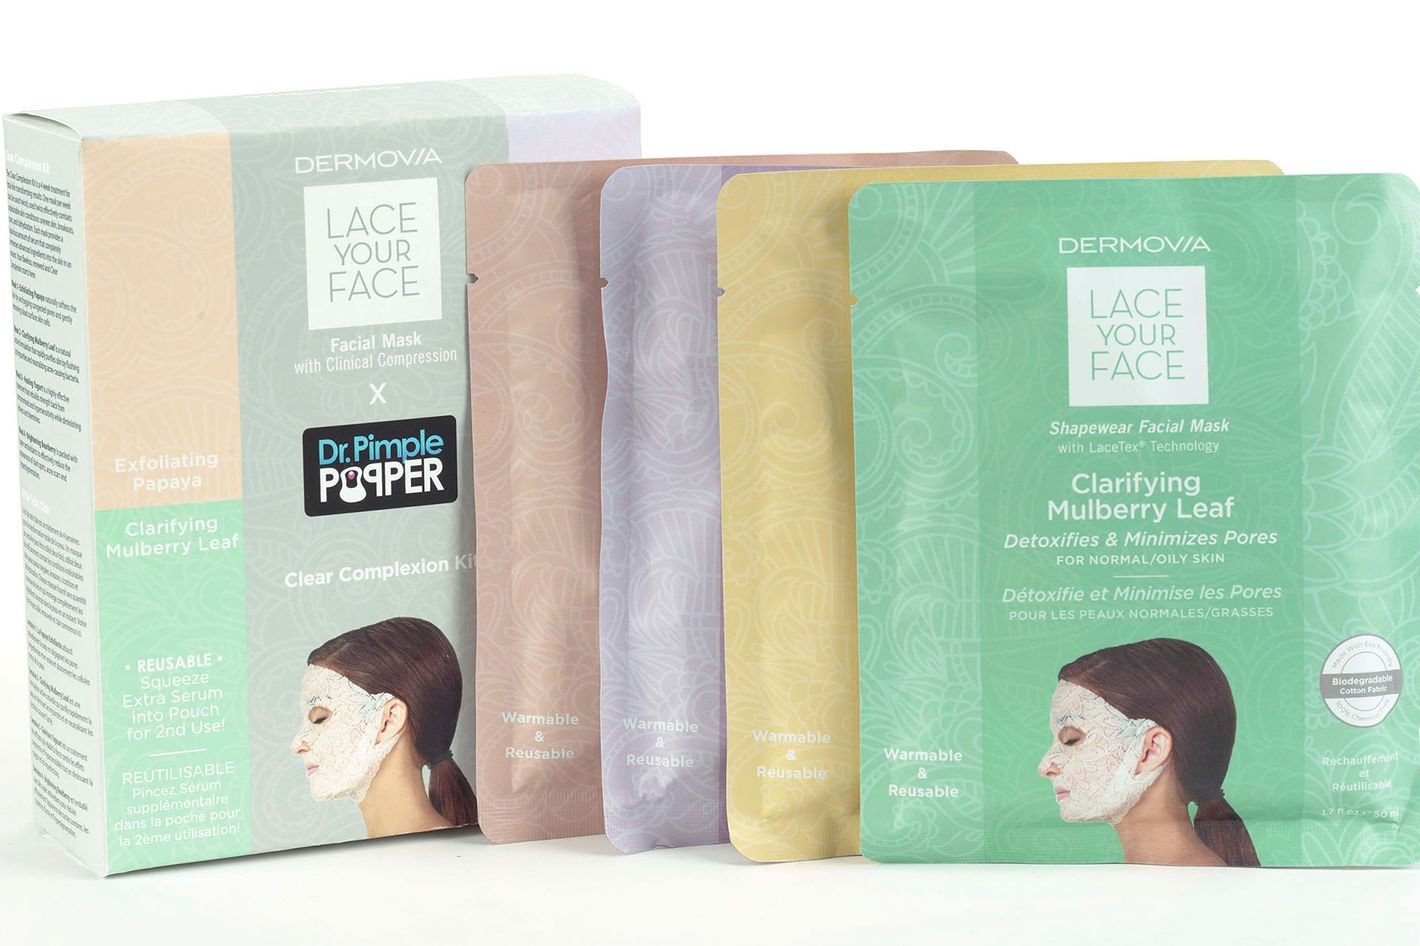 Dermovia Lace Your Face X Dr. Pimple Popper Clear Complexion Mask Set